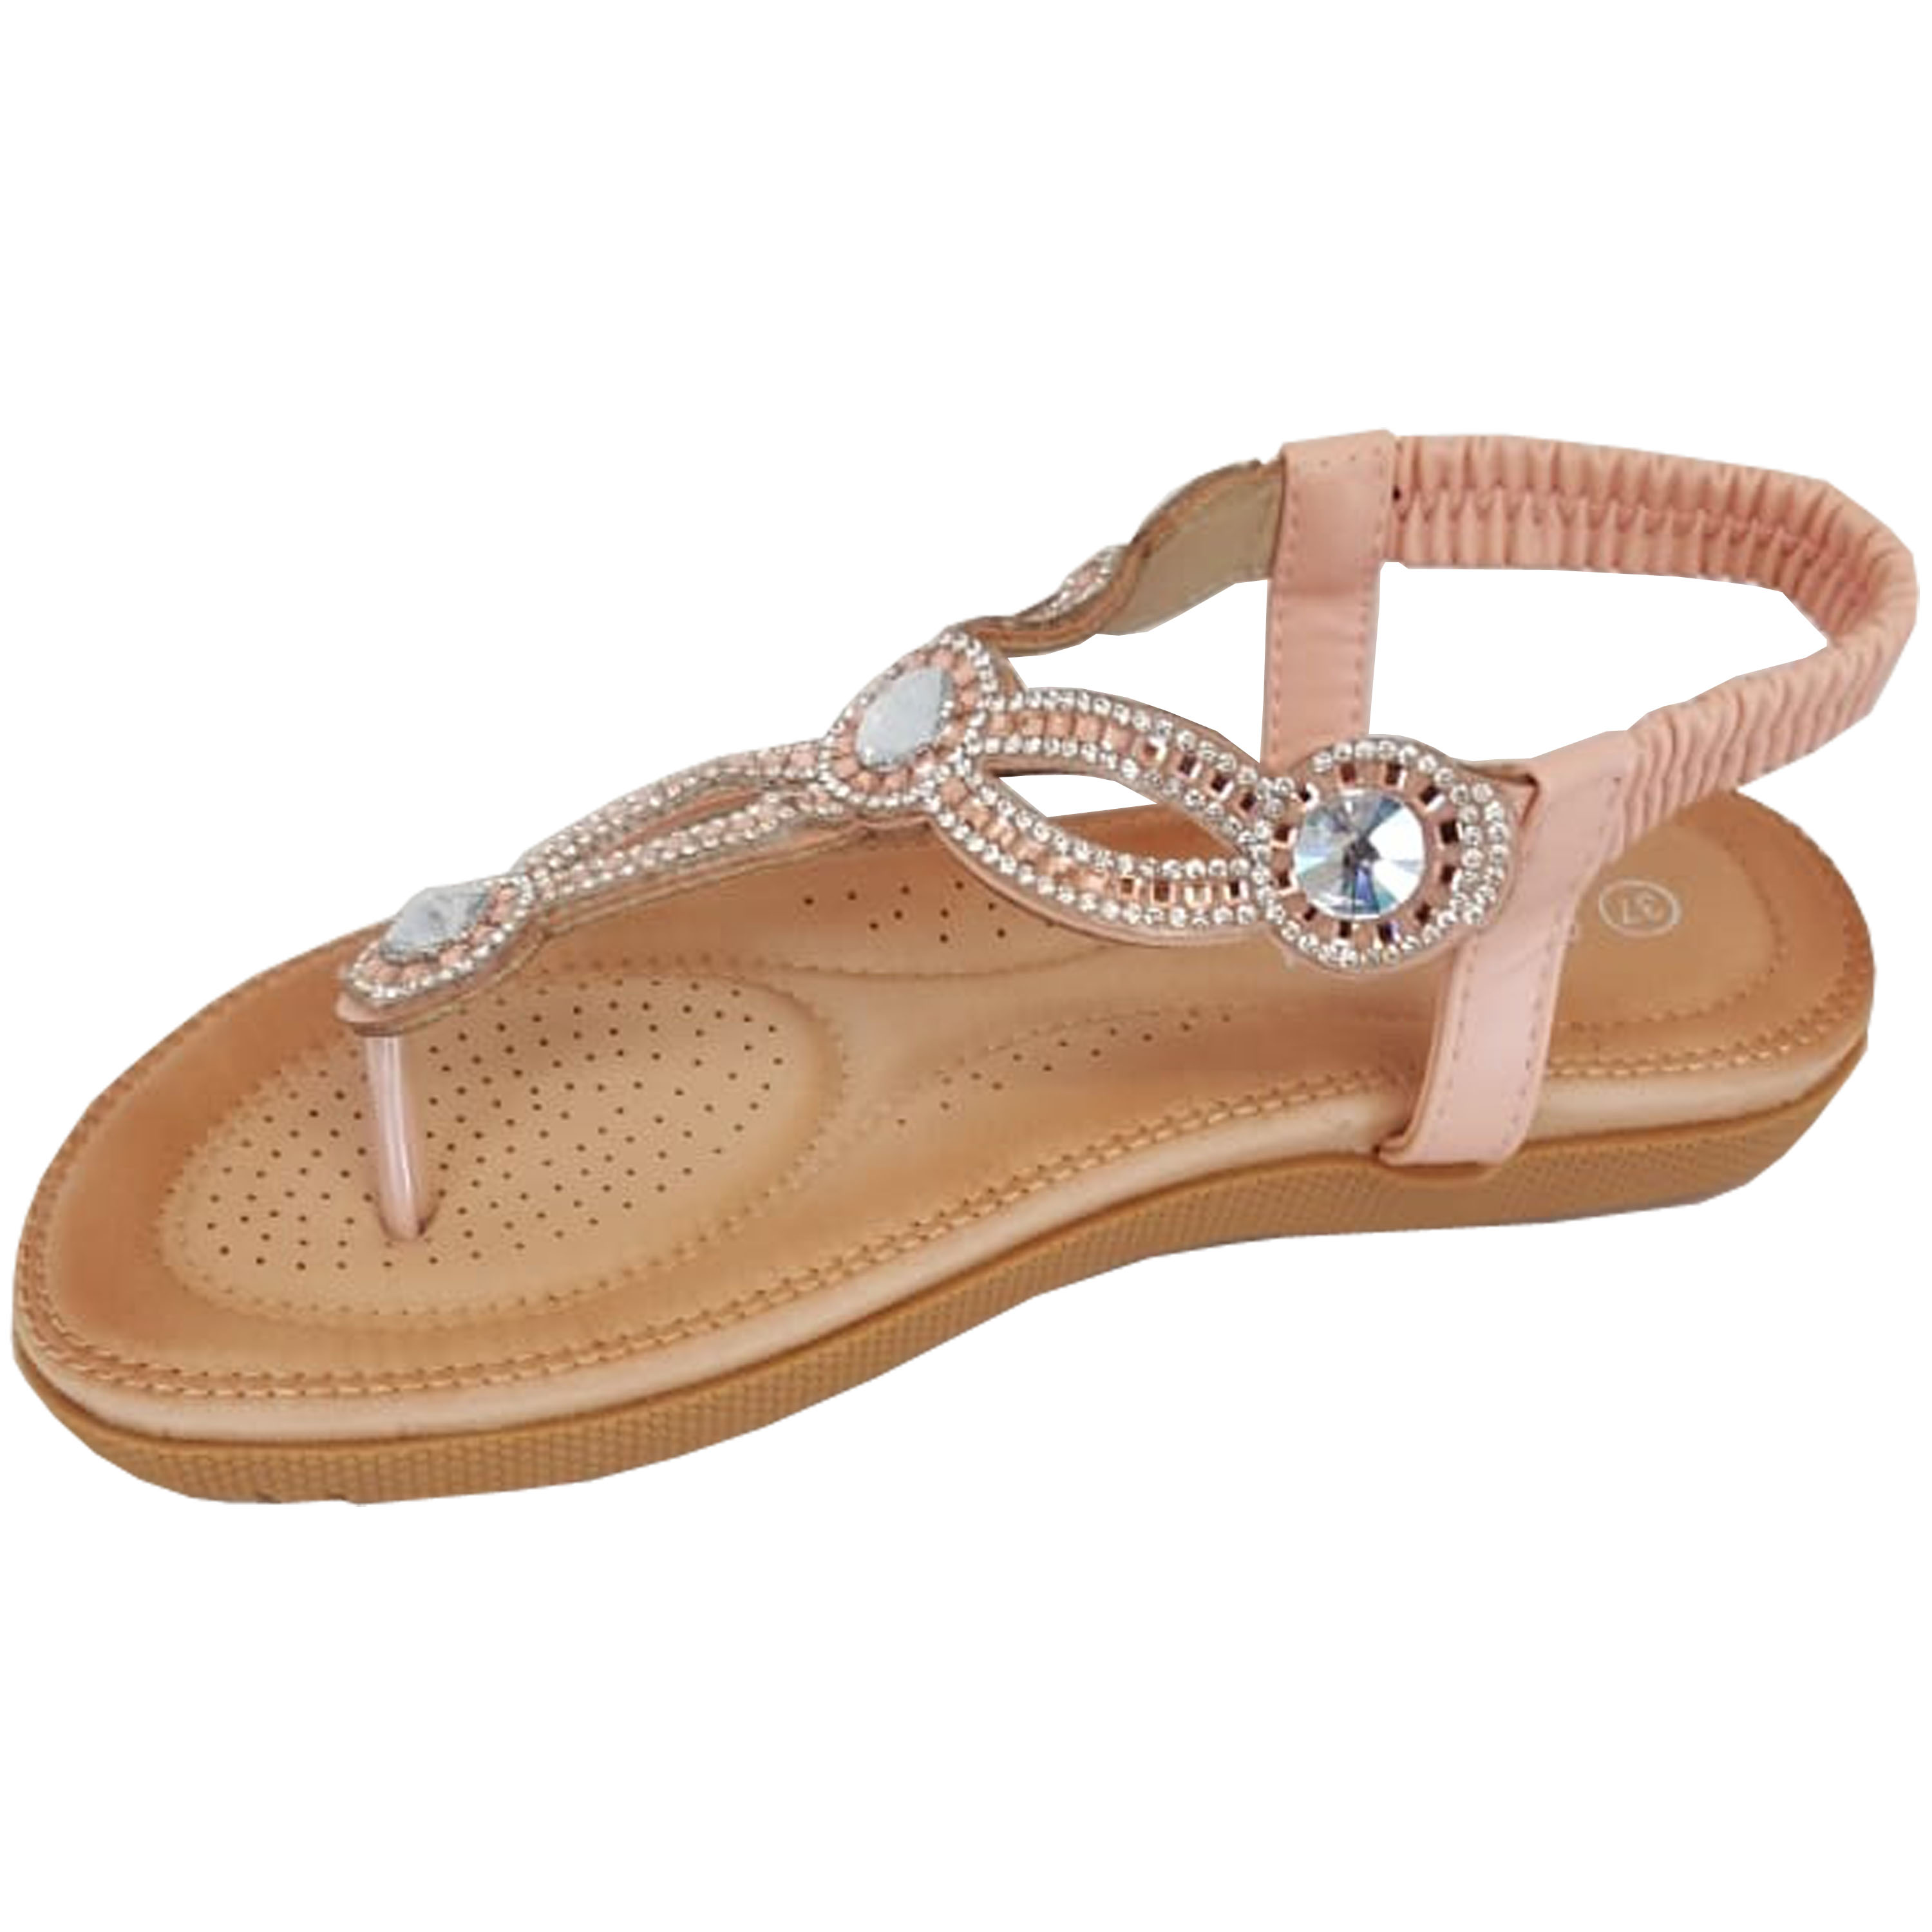 Ladies-Sandals-Womens-Diamante-Sling-Back-Open-Toe-Post-Shoes-Fashion-Summer-New thumbnail 13